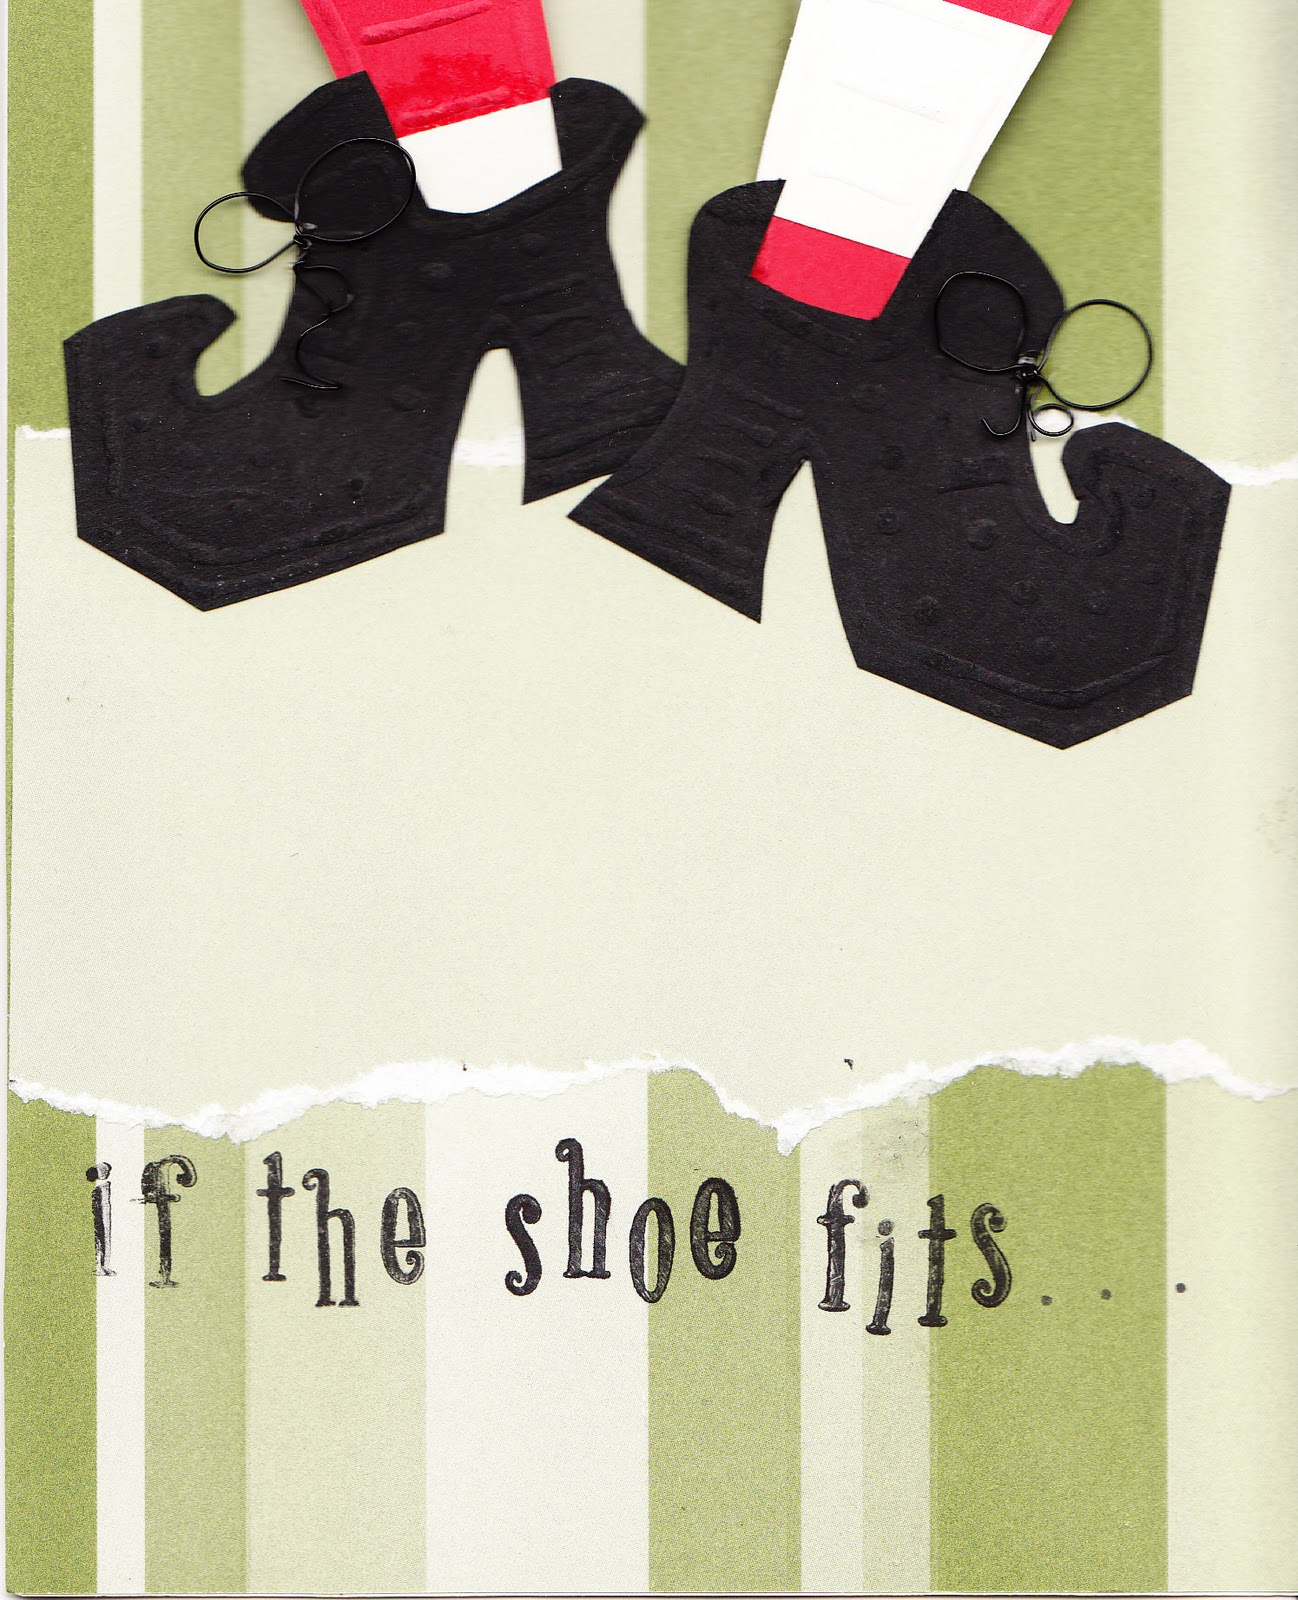 Crabby cakes blog witch shoesting impression template witch shoesting impression template halloween card maxwellsz